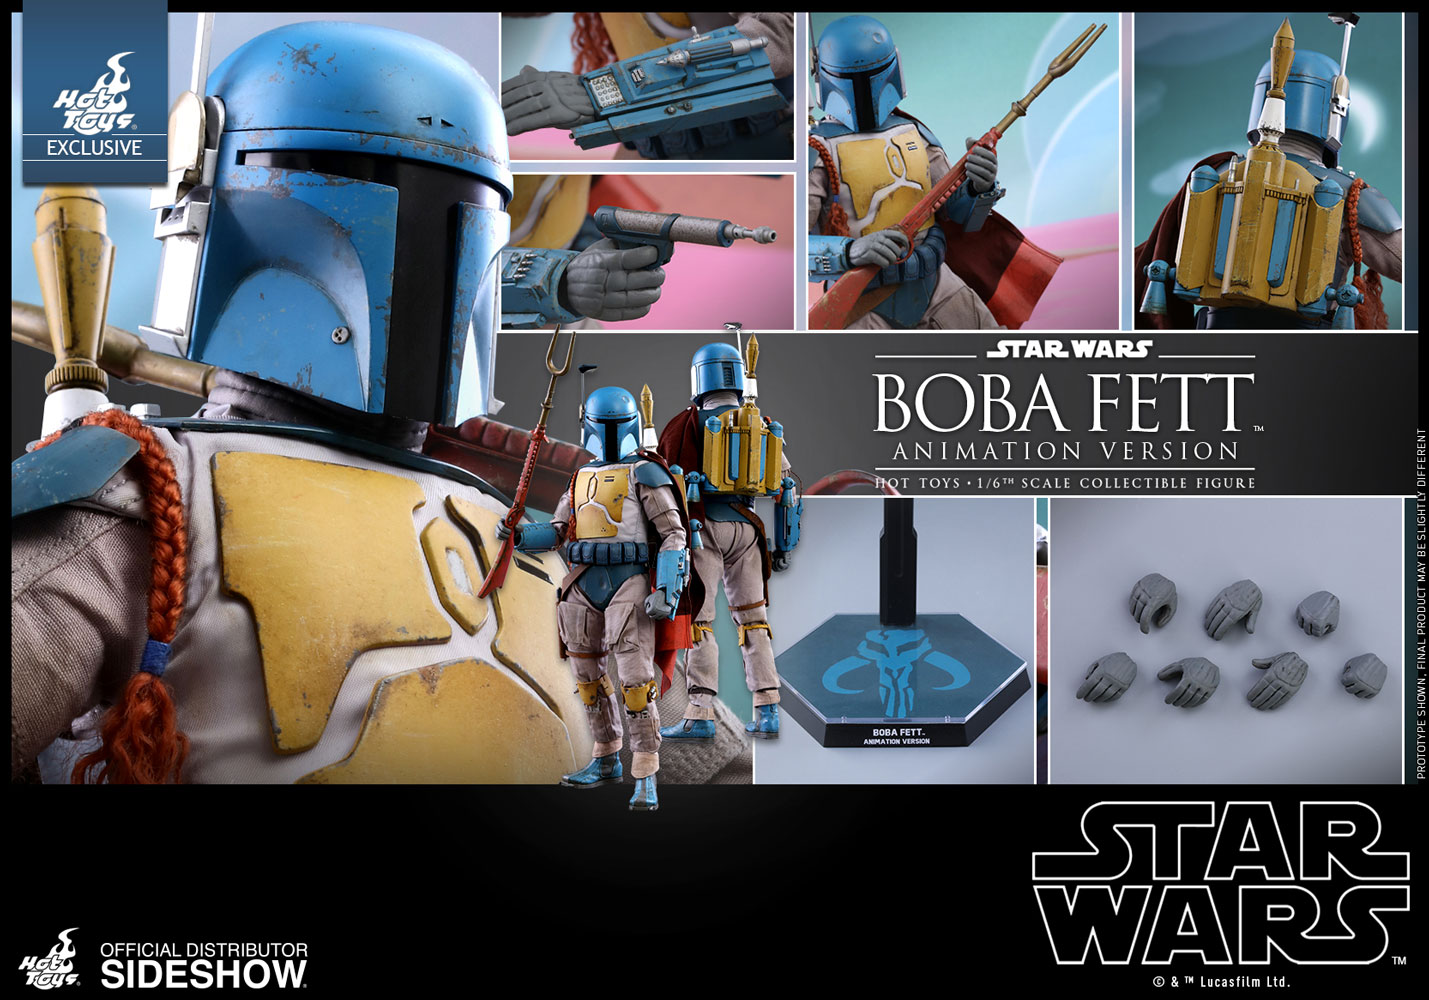 Hot Toys Boba Fett Animation Version Sixth Scale Figure Pre-Orders